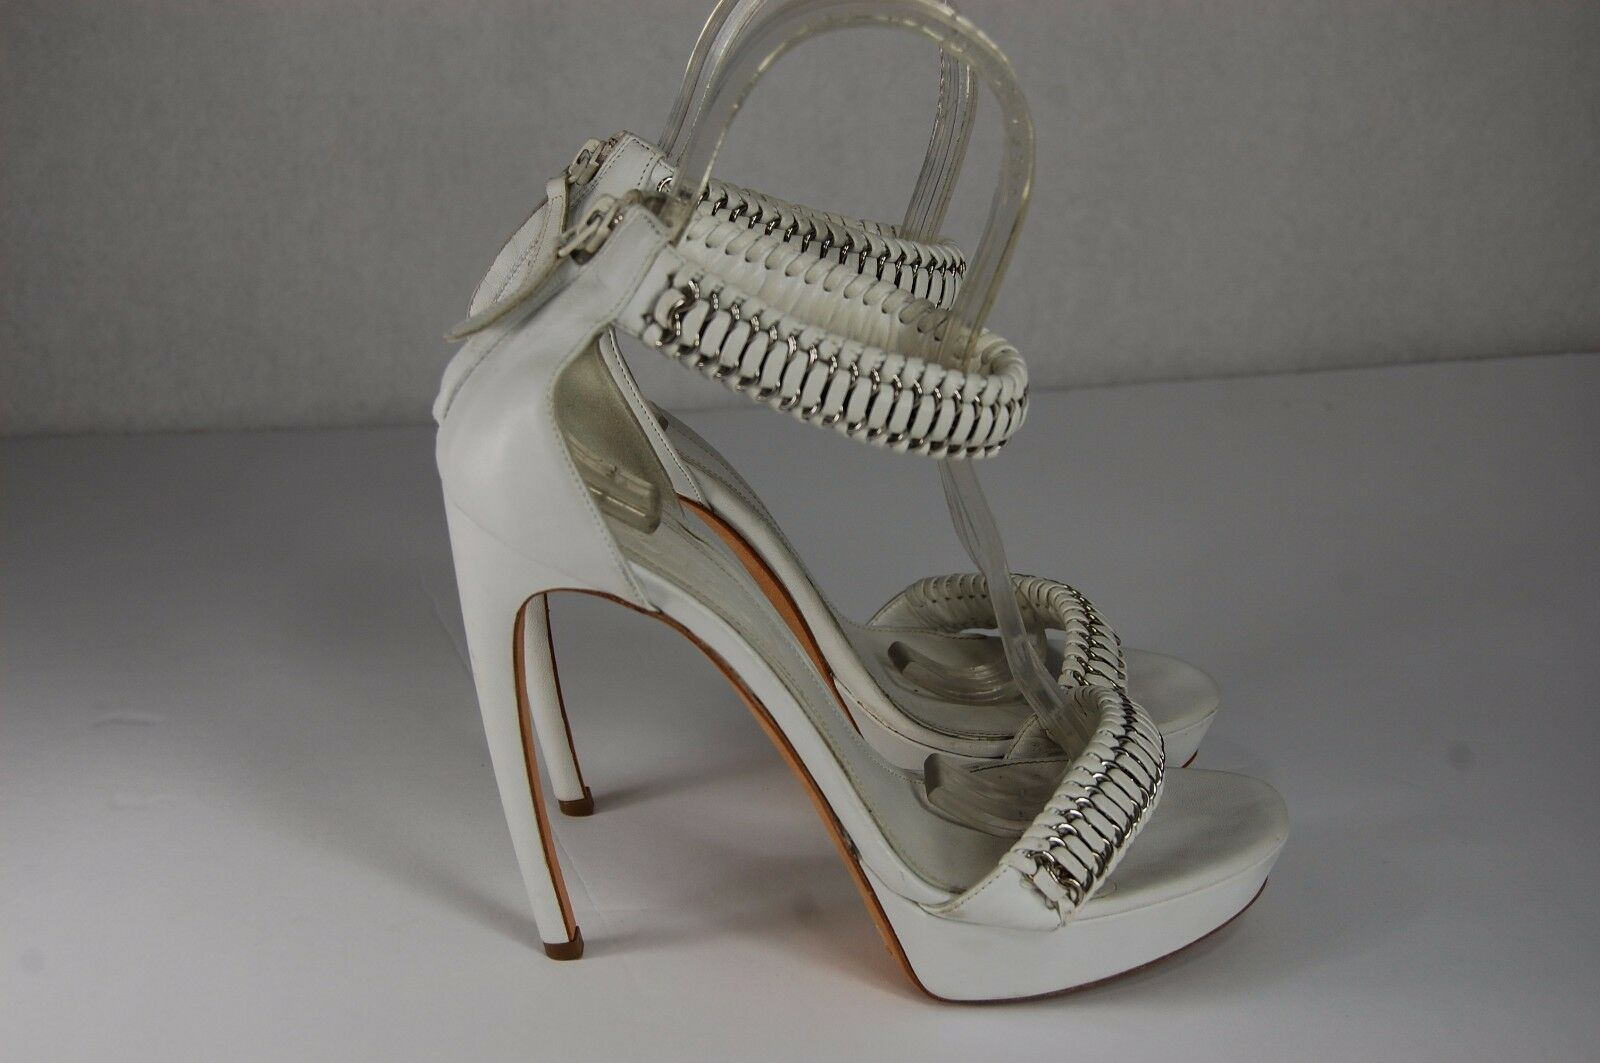 Alexander McQueen 'Armadillo' Weiß ANKLE ANKLE ANKLE STRAP CHAIN SANDALS EU 39.5 US 9.5 ad8b59